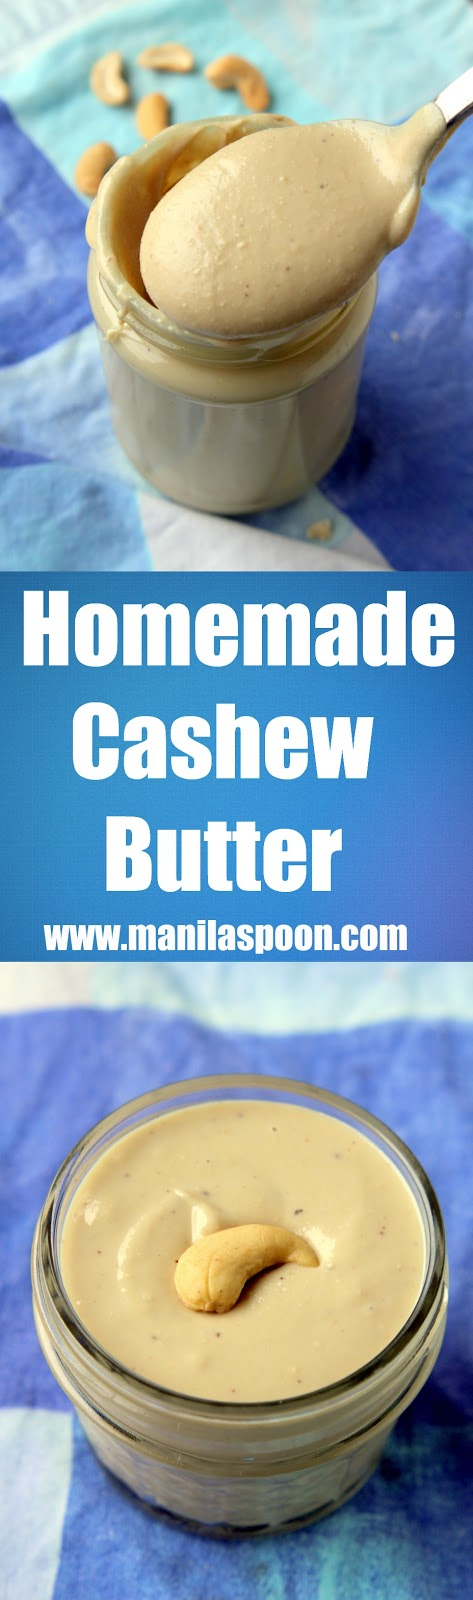 Just 2 ingredients to make your own all-natural, very tasty and super creamy Cashew Butter.  Gluten-free, vegan, low-carb, paleo-friendly and so easy to make! | manilaspoon.com